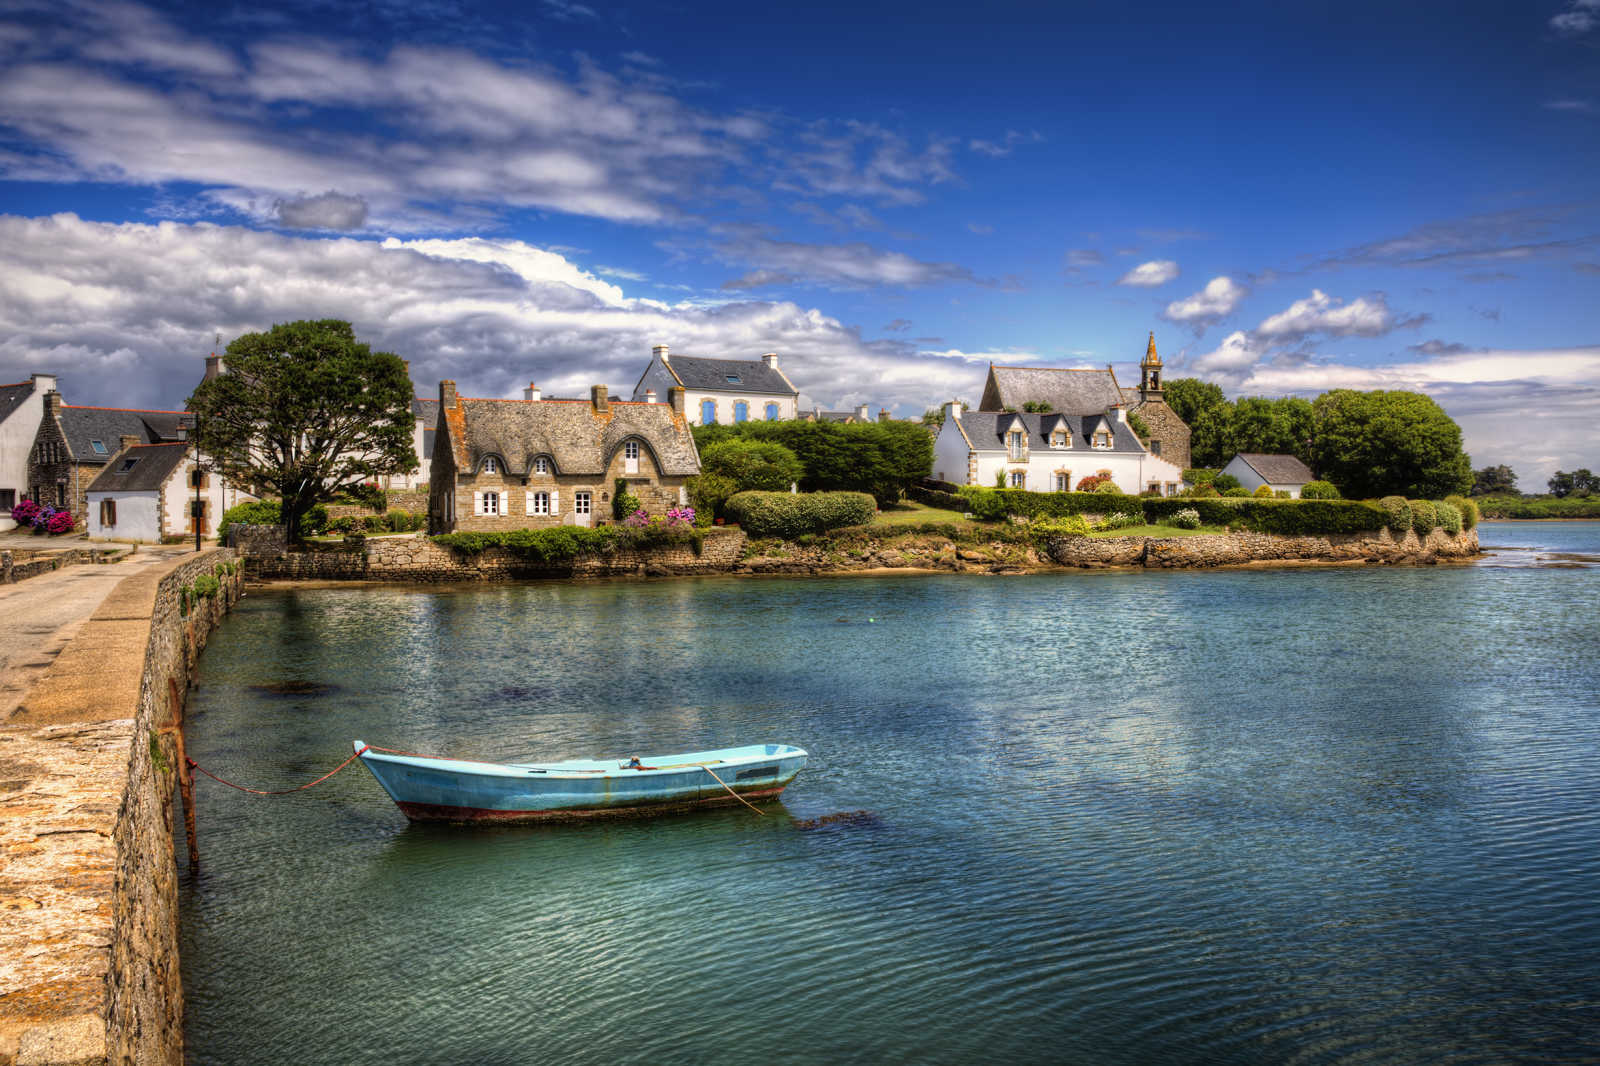 View of the fishing village Saint-Cado in the Bretagne in France